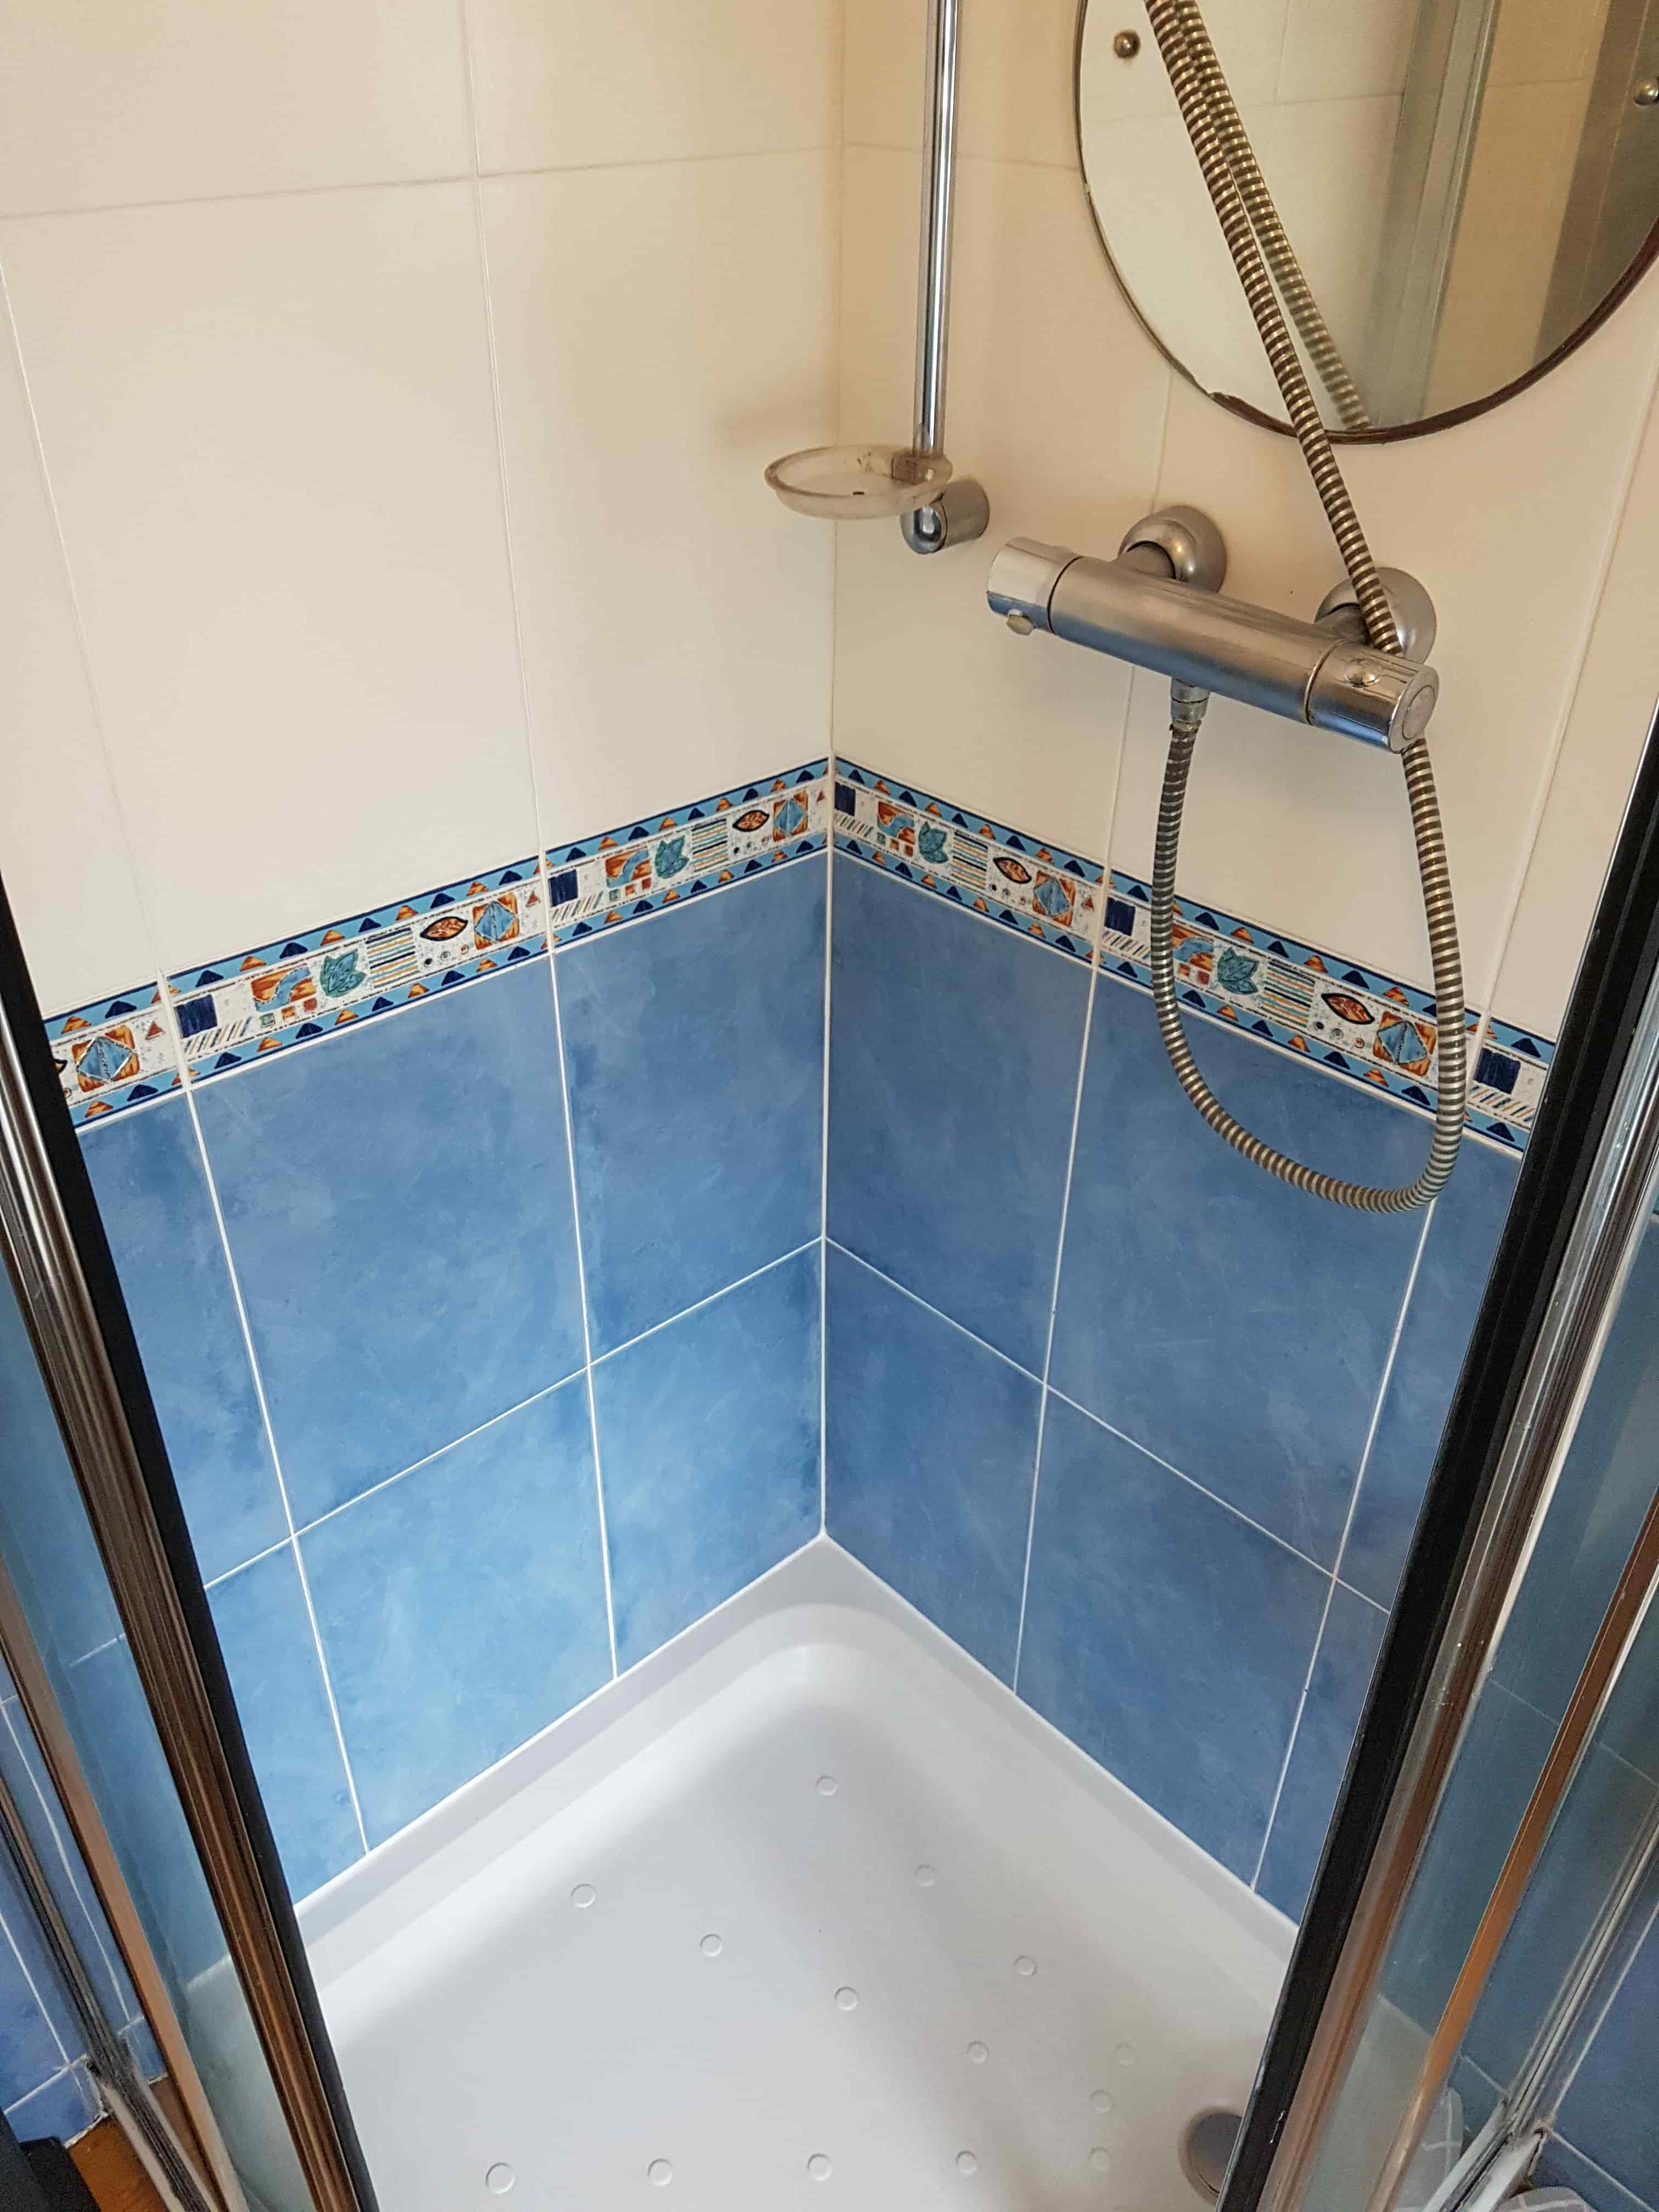 Shower Cubicle After Cleaning Chapel-en-le-Frith